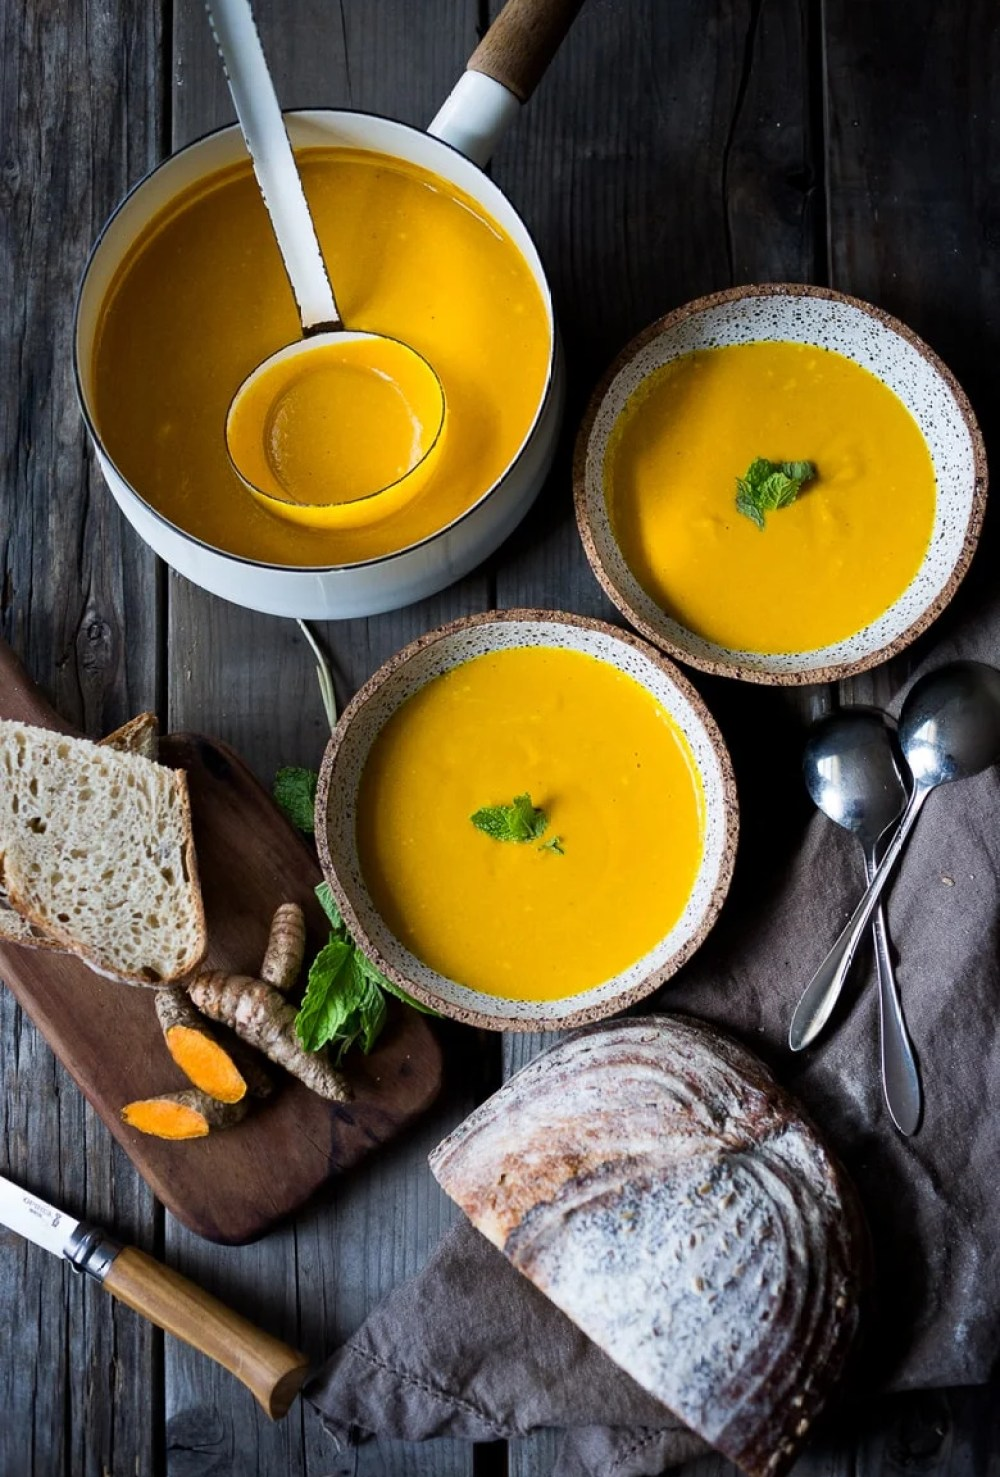 CREAMY CARROT TURMERIC SOUP WITH COCONUT